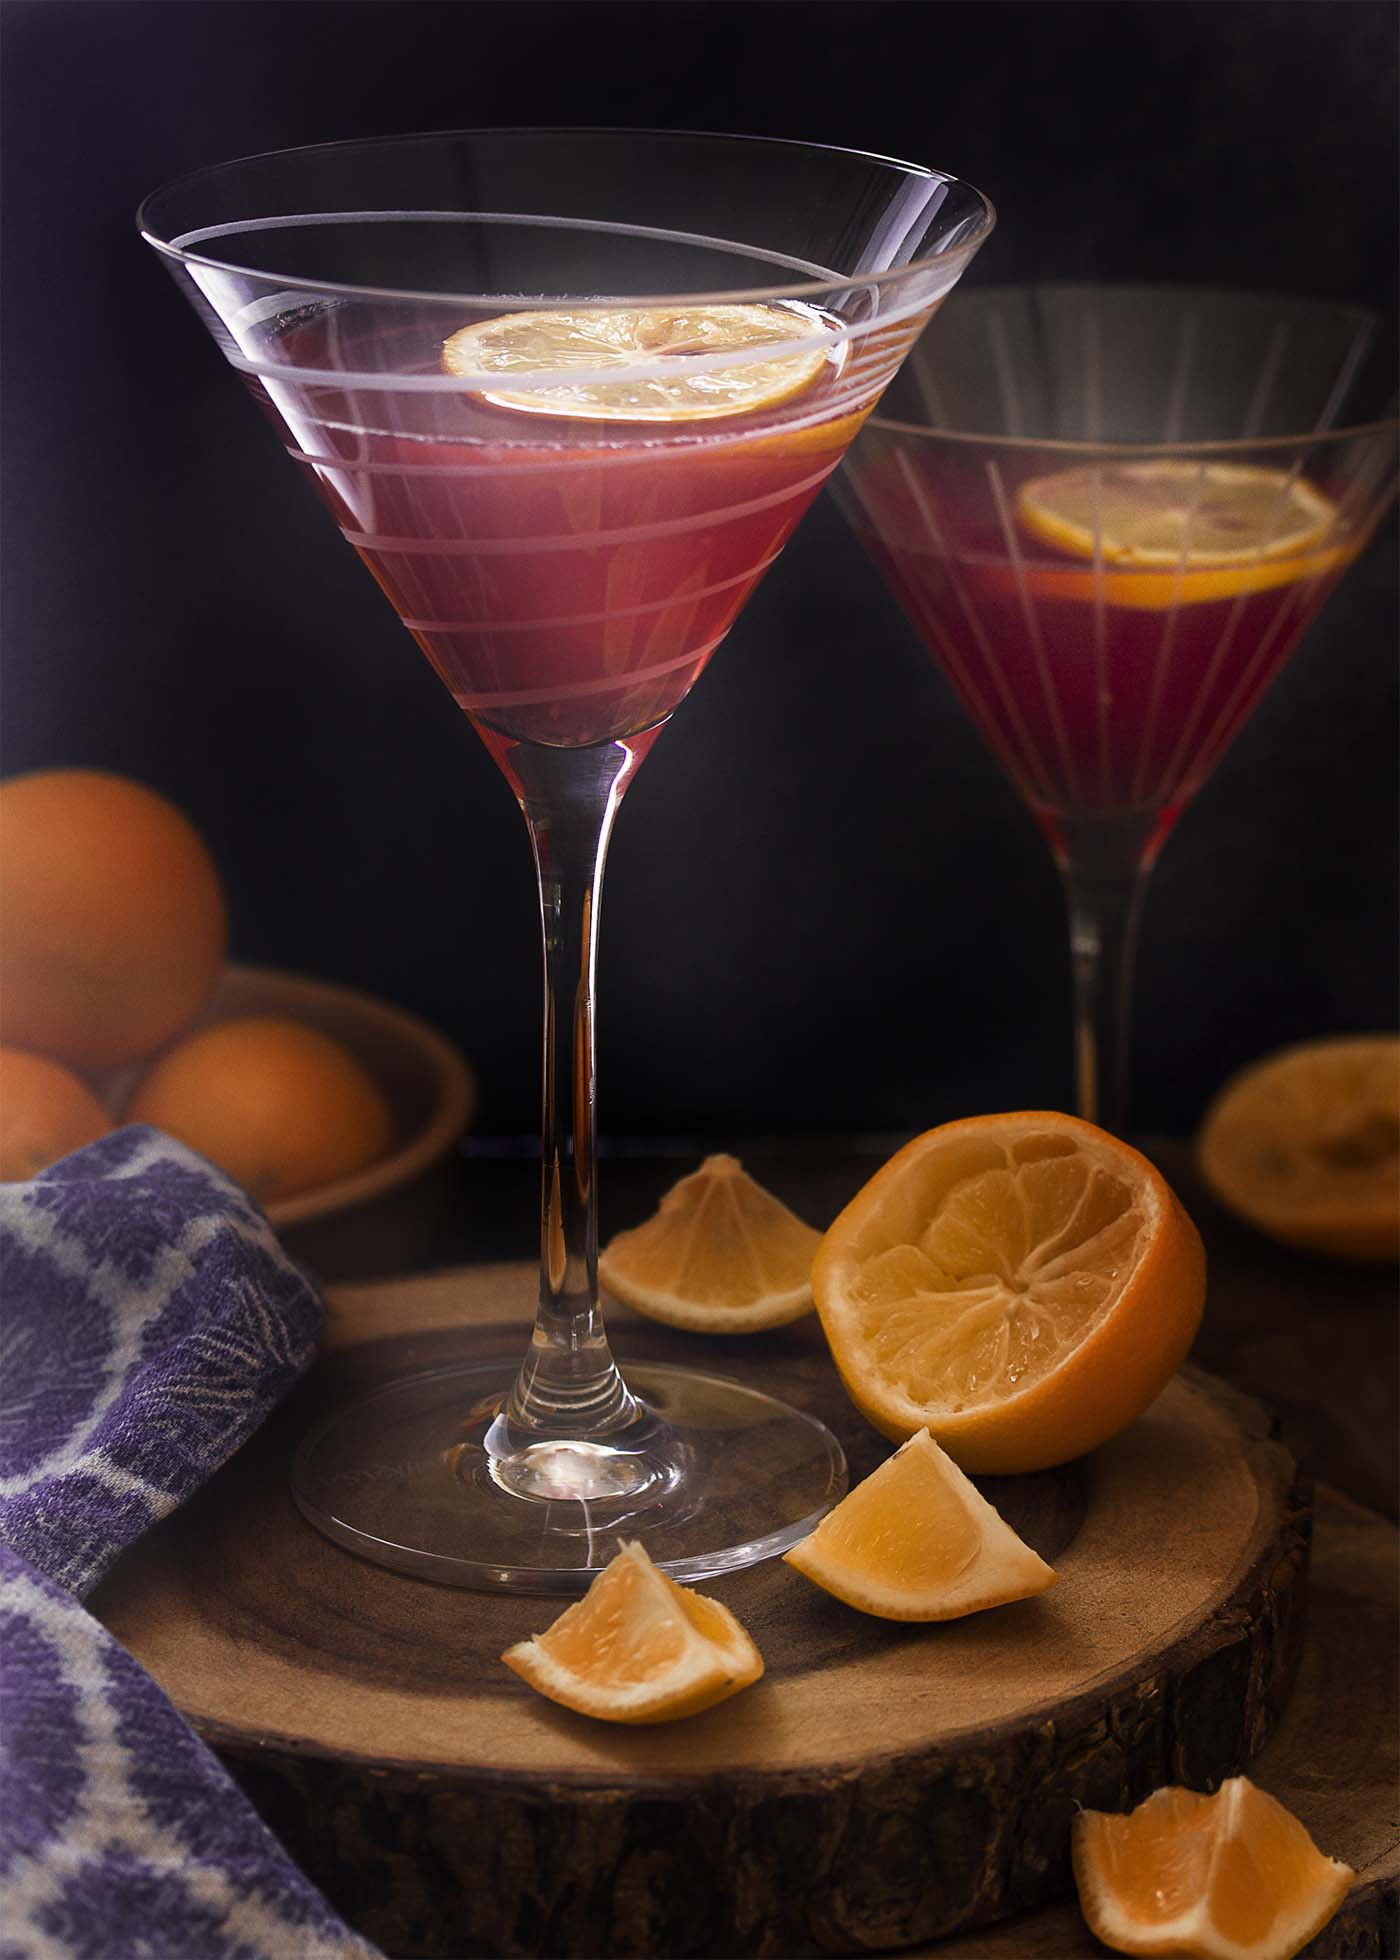 Two tall martini glasses filled with meyer lemon cosmos each garnished with a lemon slice.